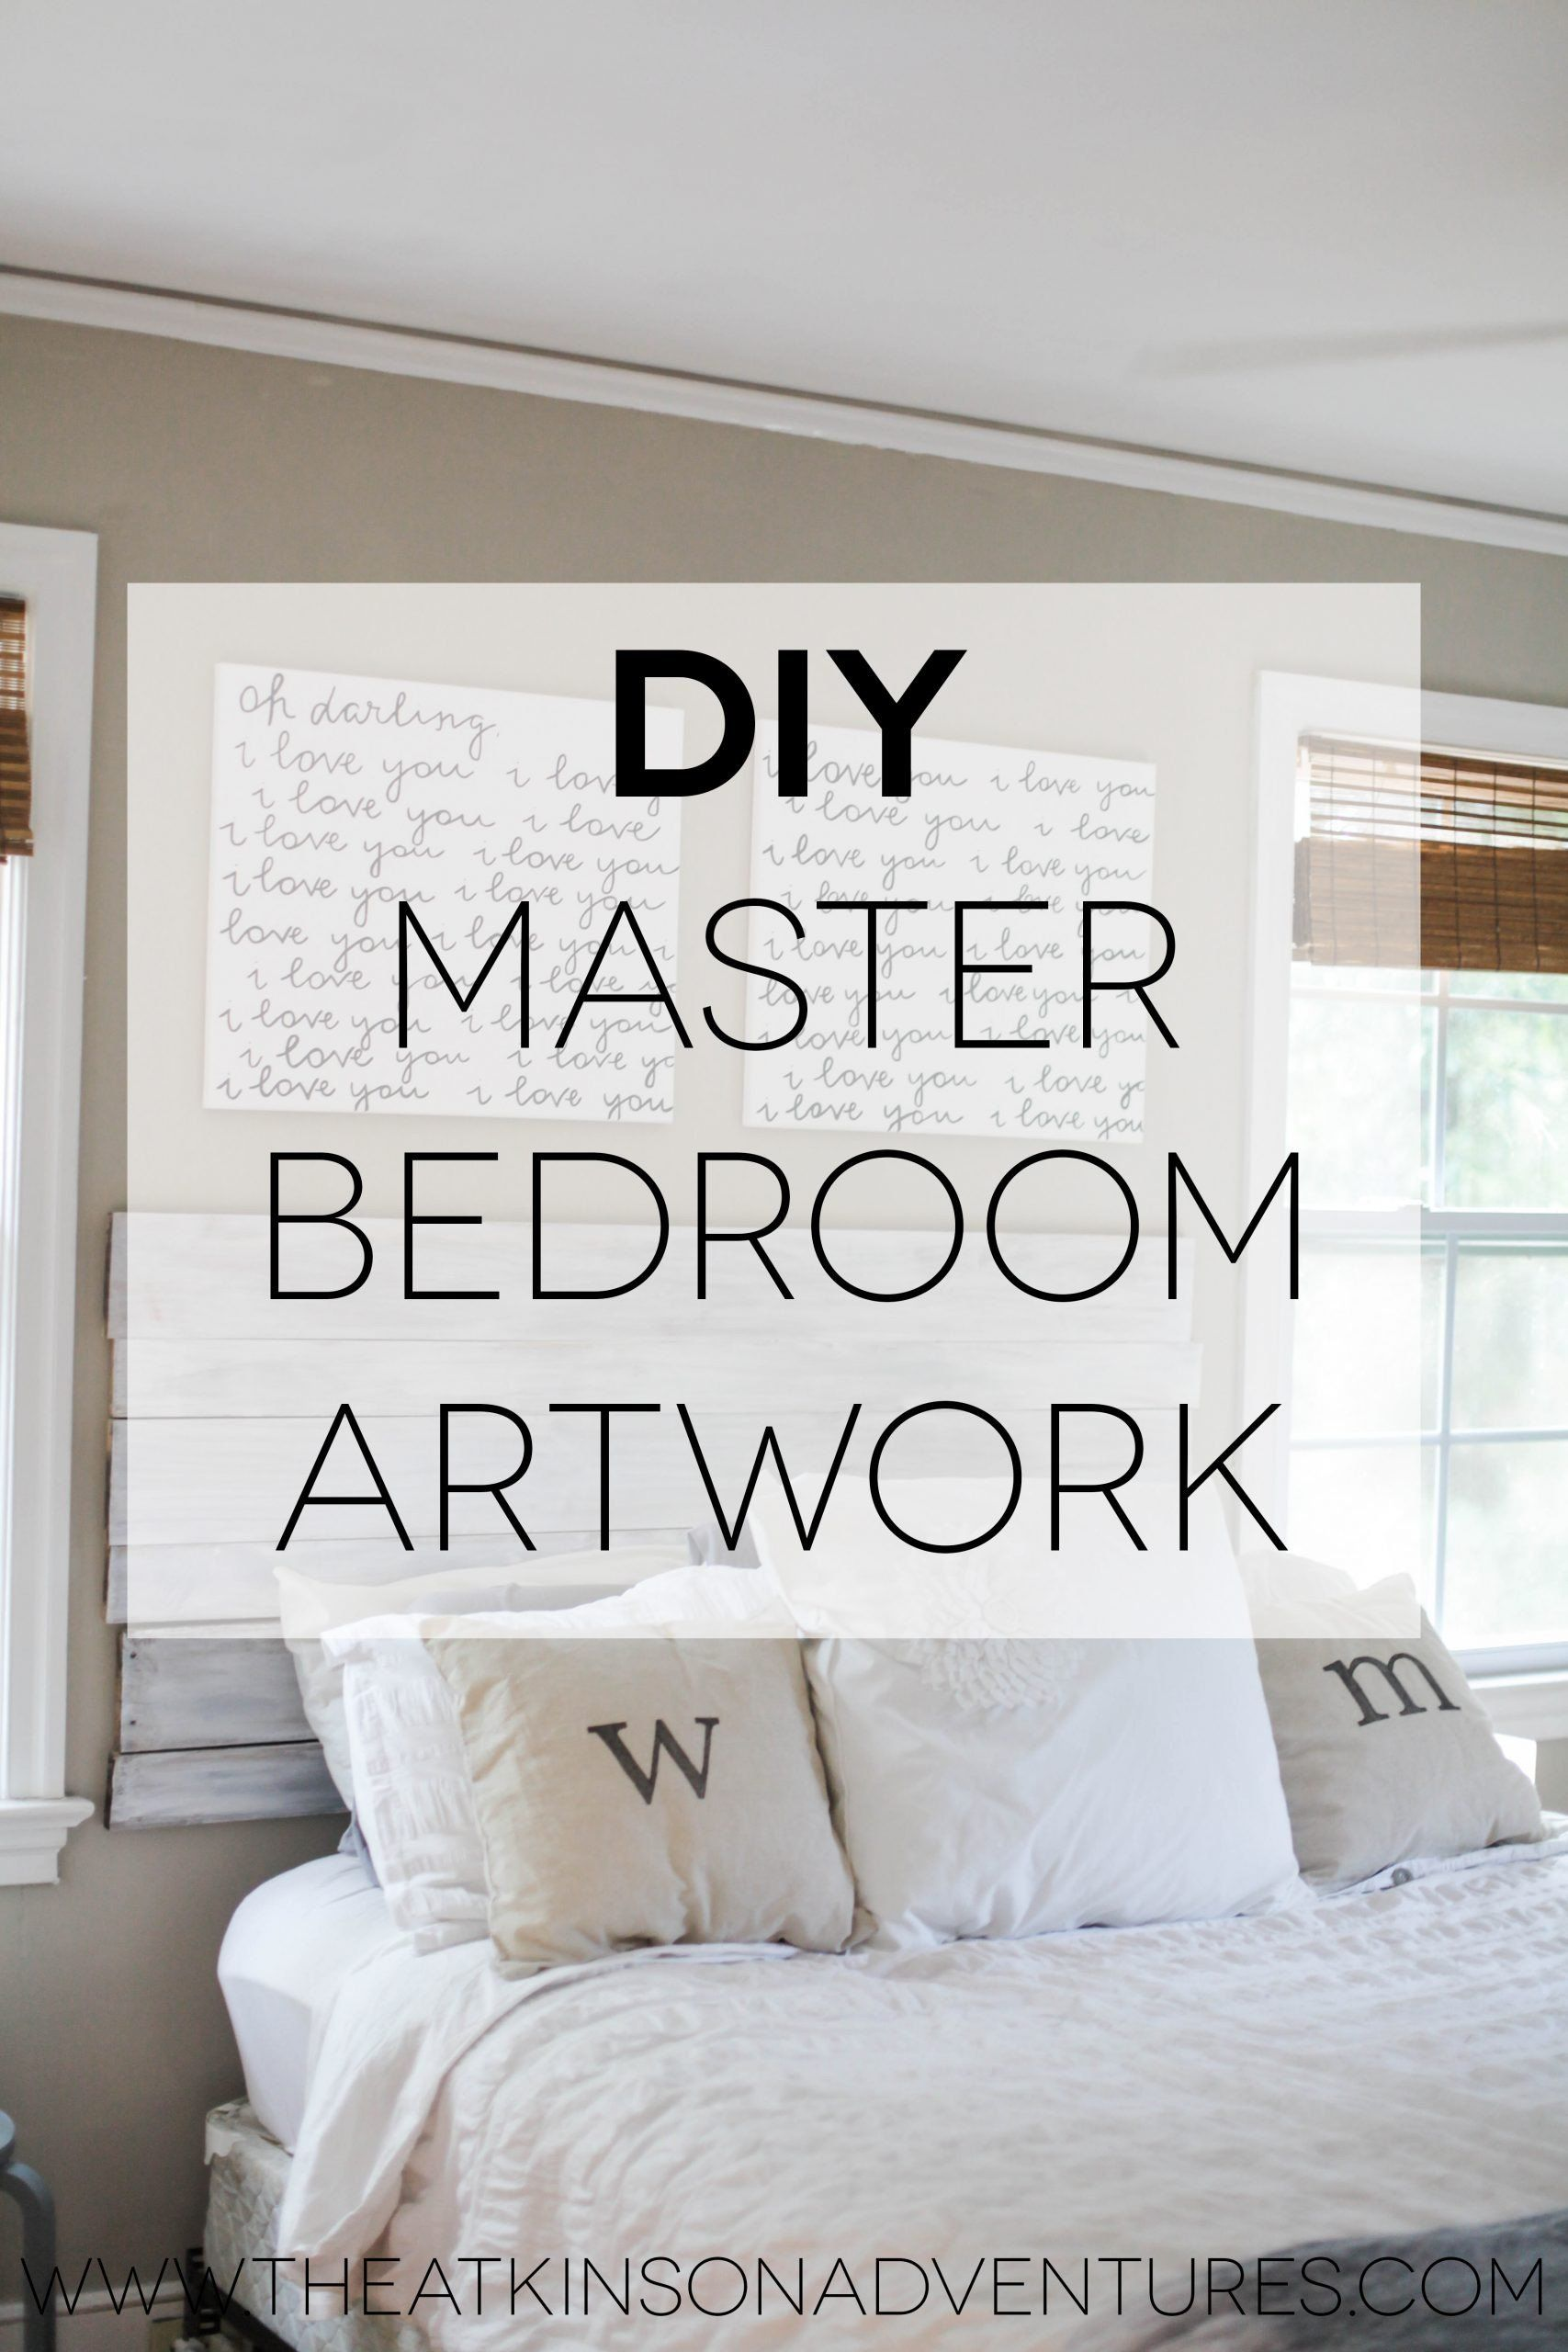 Bedrooms Wall Decor Ideas Diy Bedroom Wall Decorating Ideas Pinterest Decor For Girl In 2020 Master Bedroom Wall Decor Master Bedroom Diy Master Bedroom Artwork